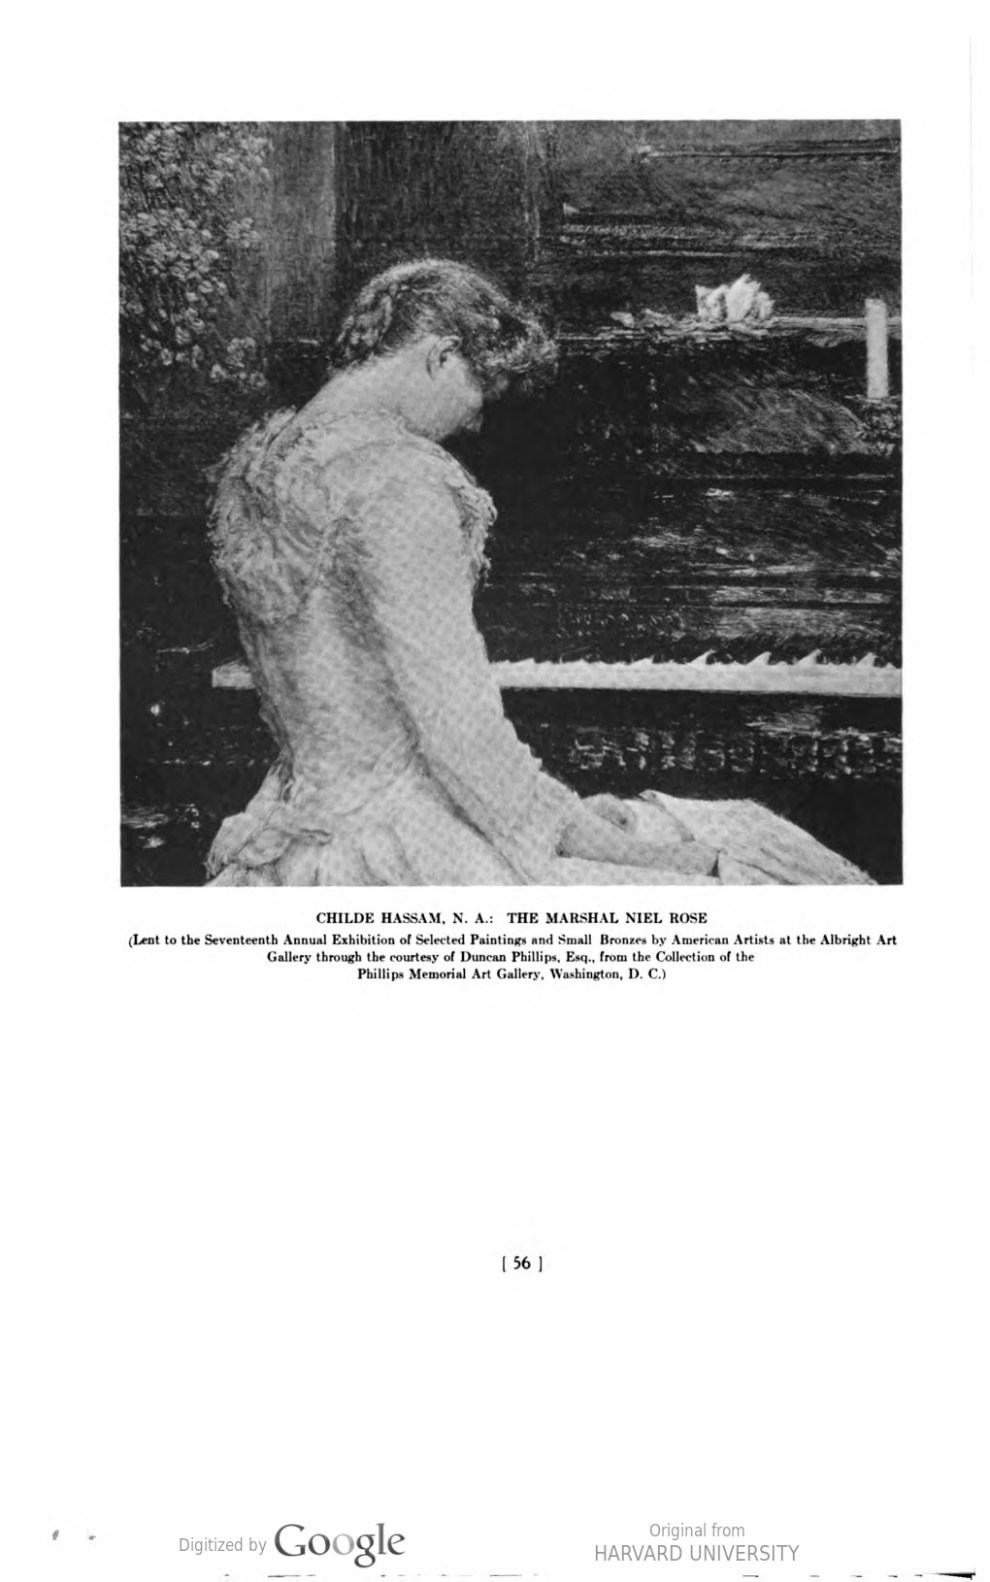 """Academy Notes, Buffalo Fine Arts Academy, Albright Art Gallery, Buffalo, NY, """"The Seventeenth Annual Exhibition of Selected Paintings and Small Bronzes by American Artists at the Albright Art Gallery"""", July - December, 1923, Volume 18, Number 2, page 42-58, not illustrated."""